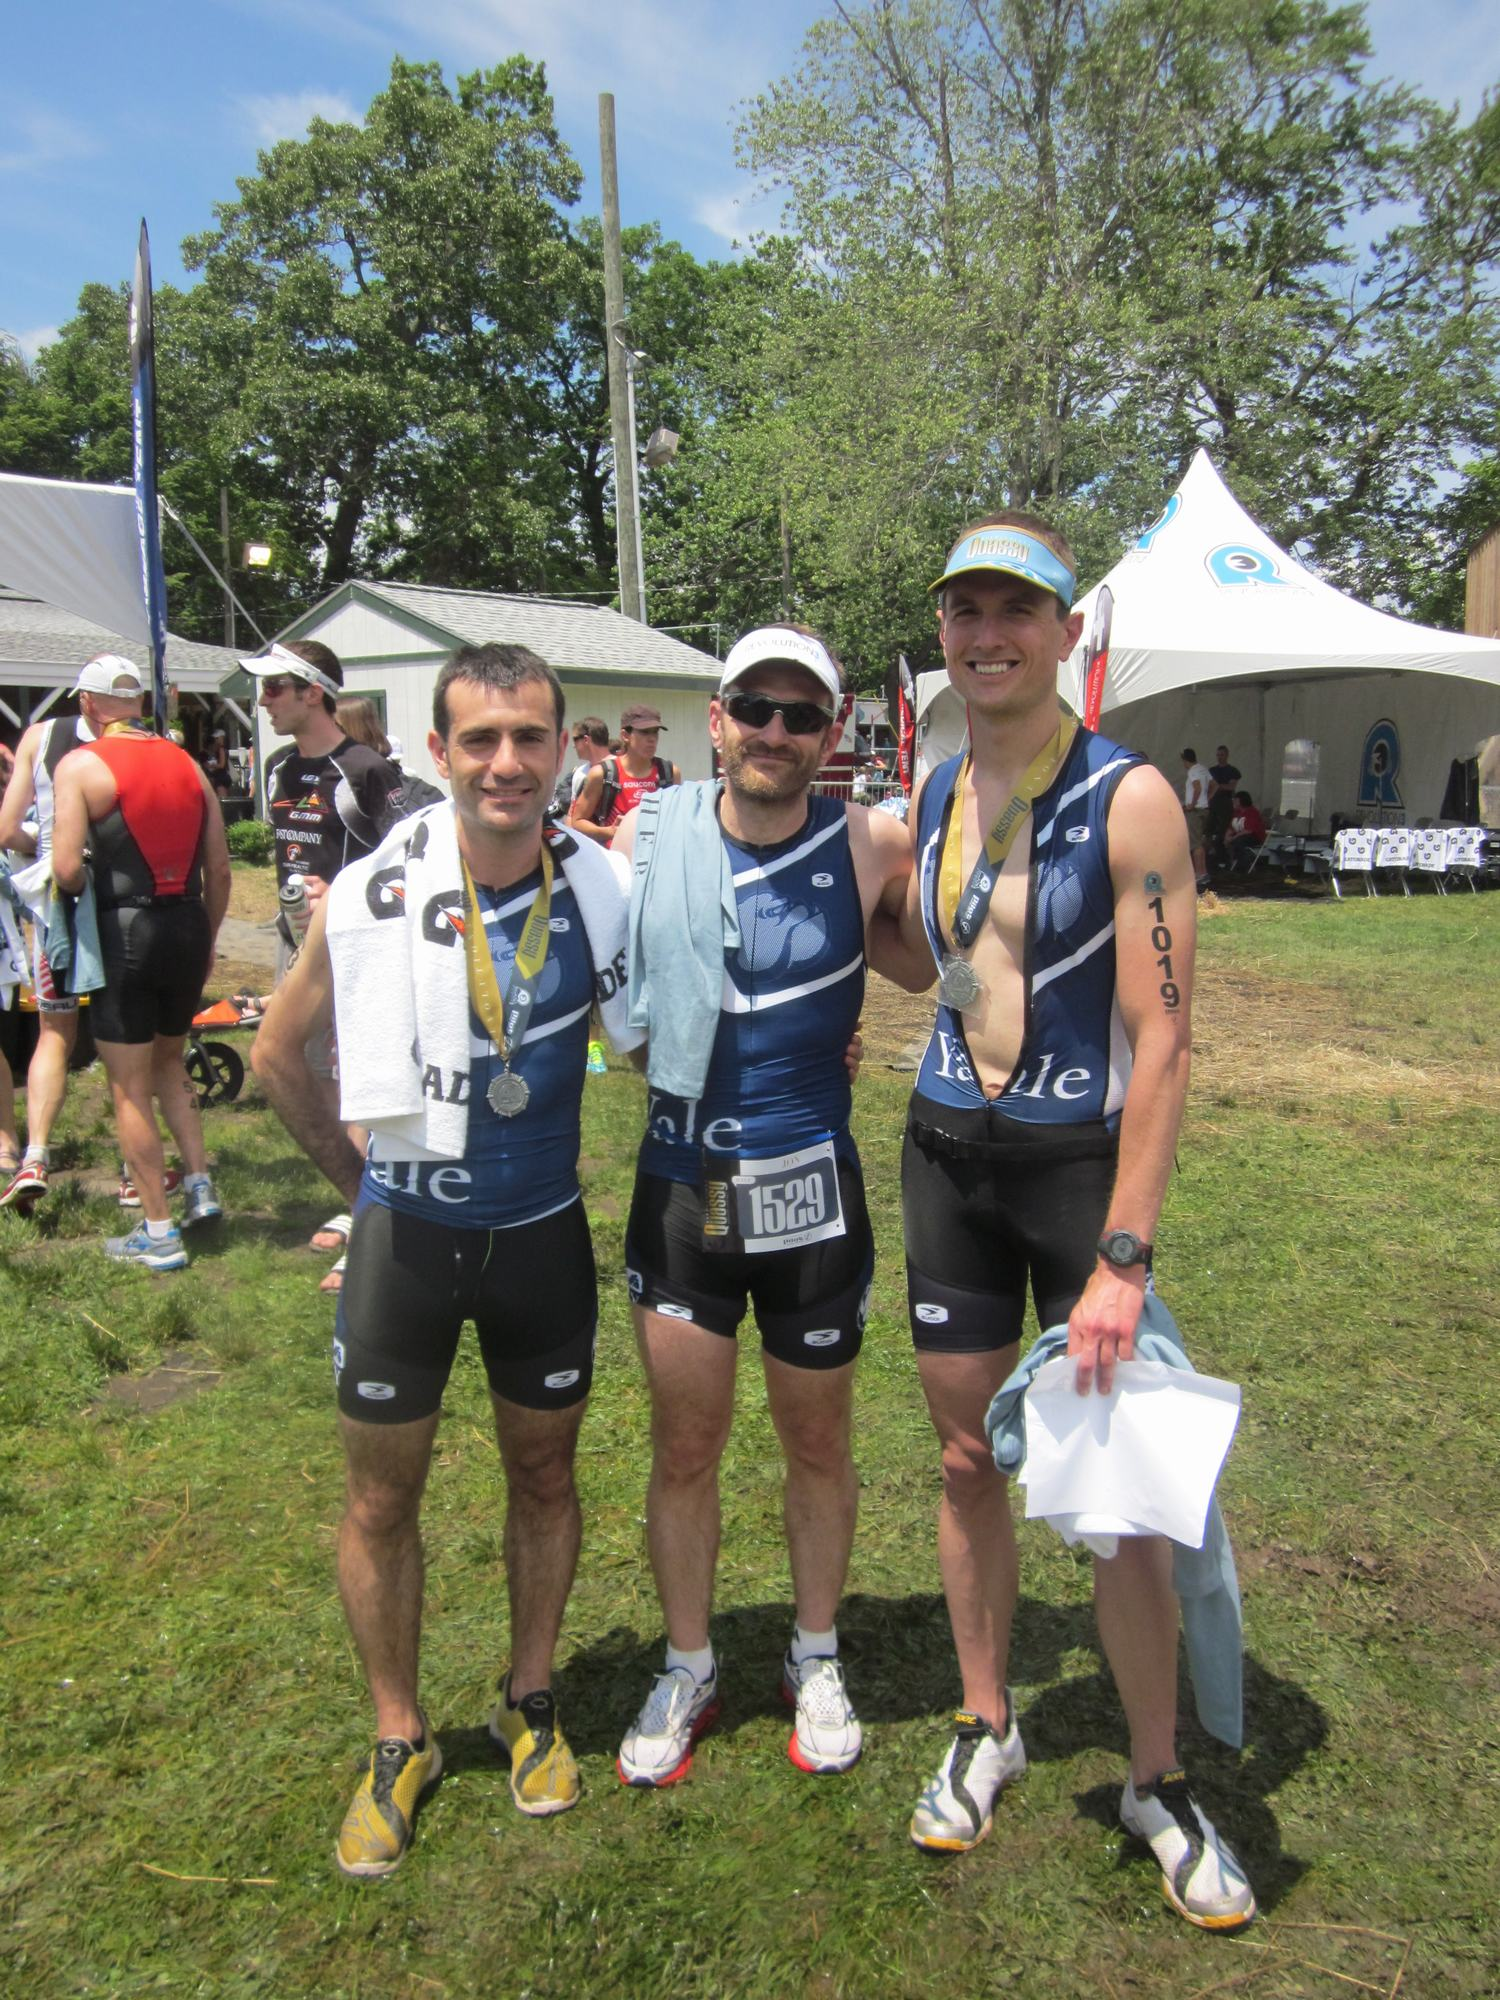 Rev3 Quassy (provide Roberto or Francesc with more pictures if you have them!)